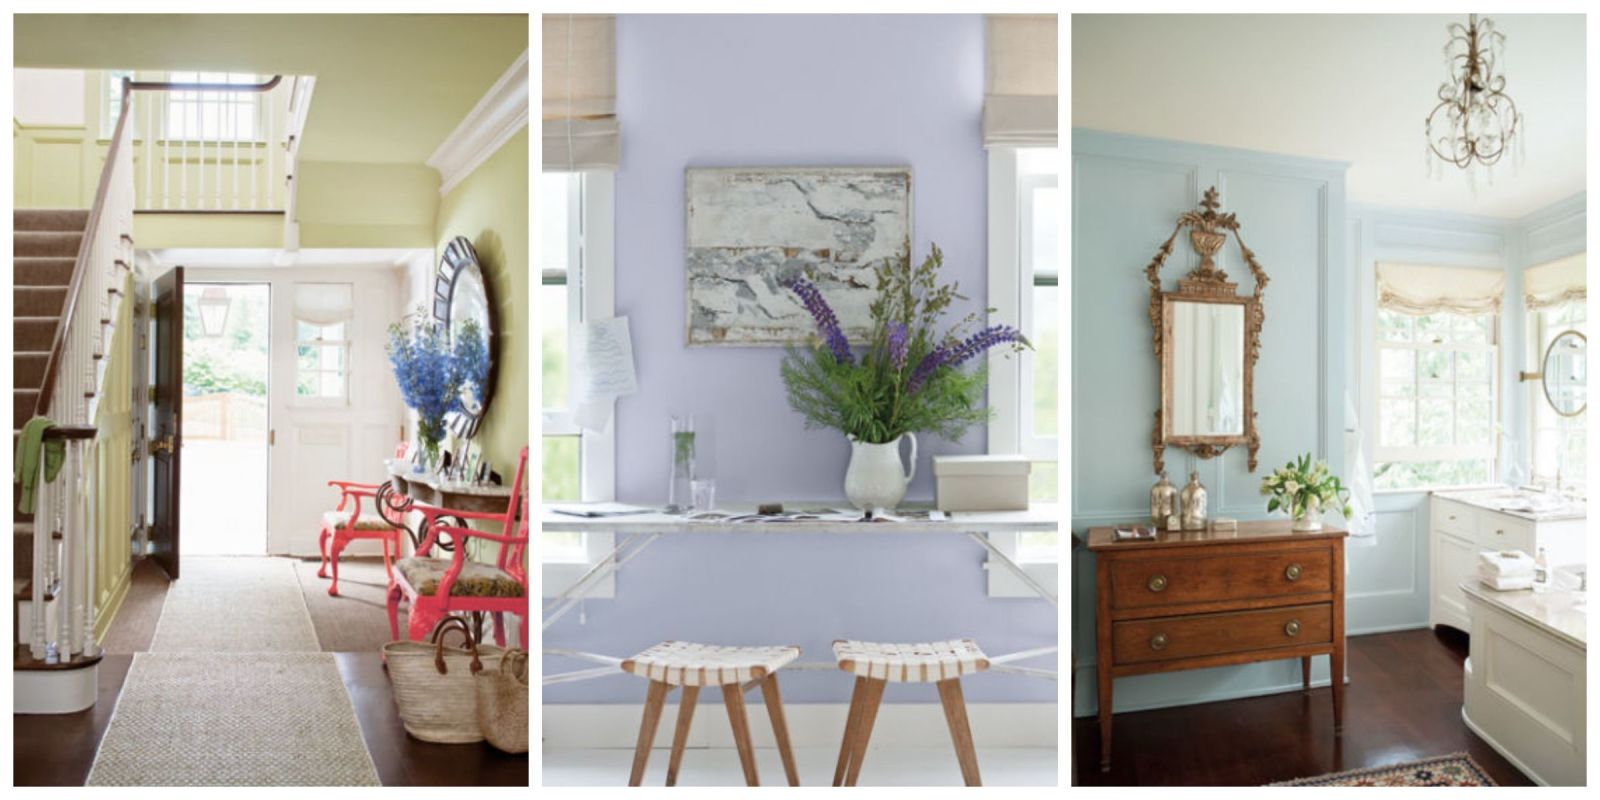 the new neutrals paint color trends for 2014 - Modern Interior Paint Colors 2014